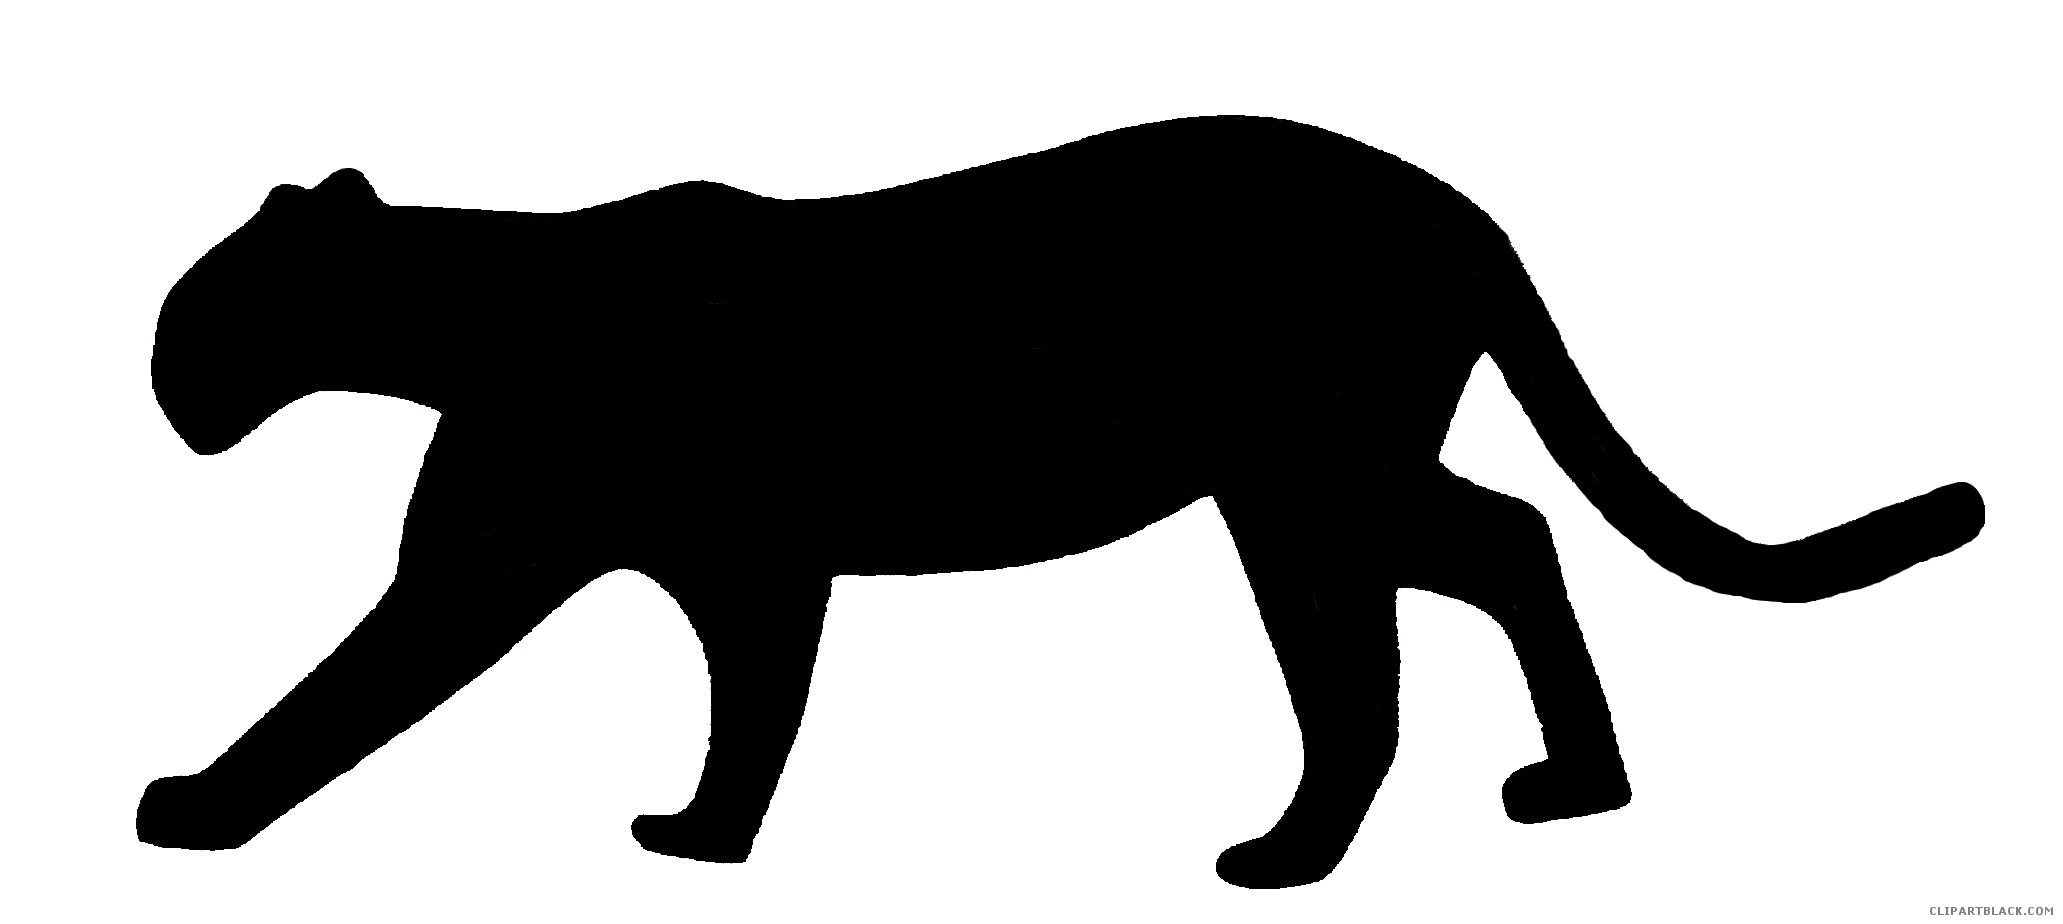 2063x924 Panther Silhouette Animal Free Black White Clipart Images